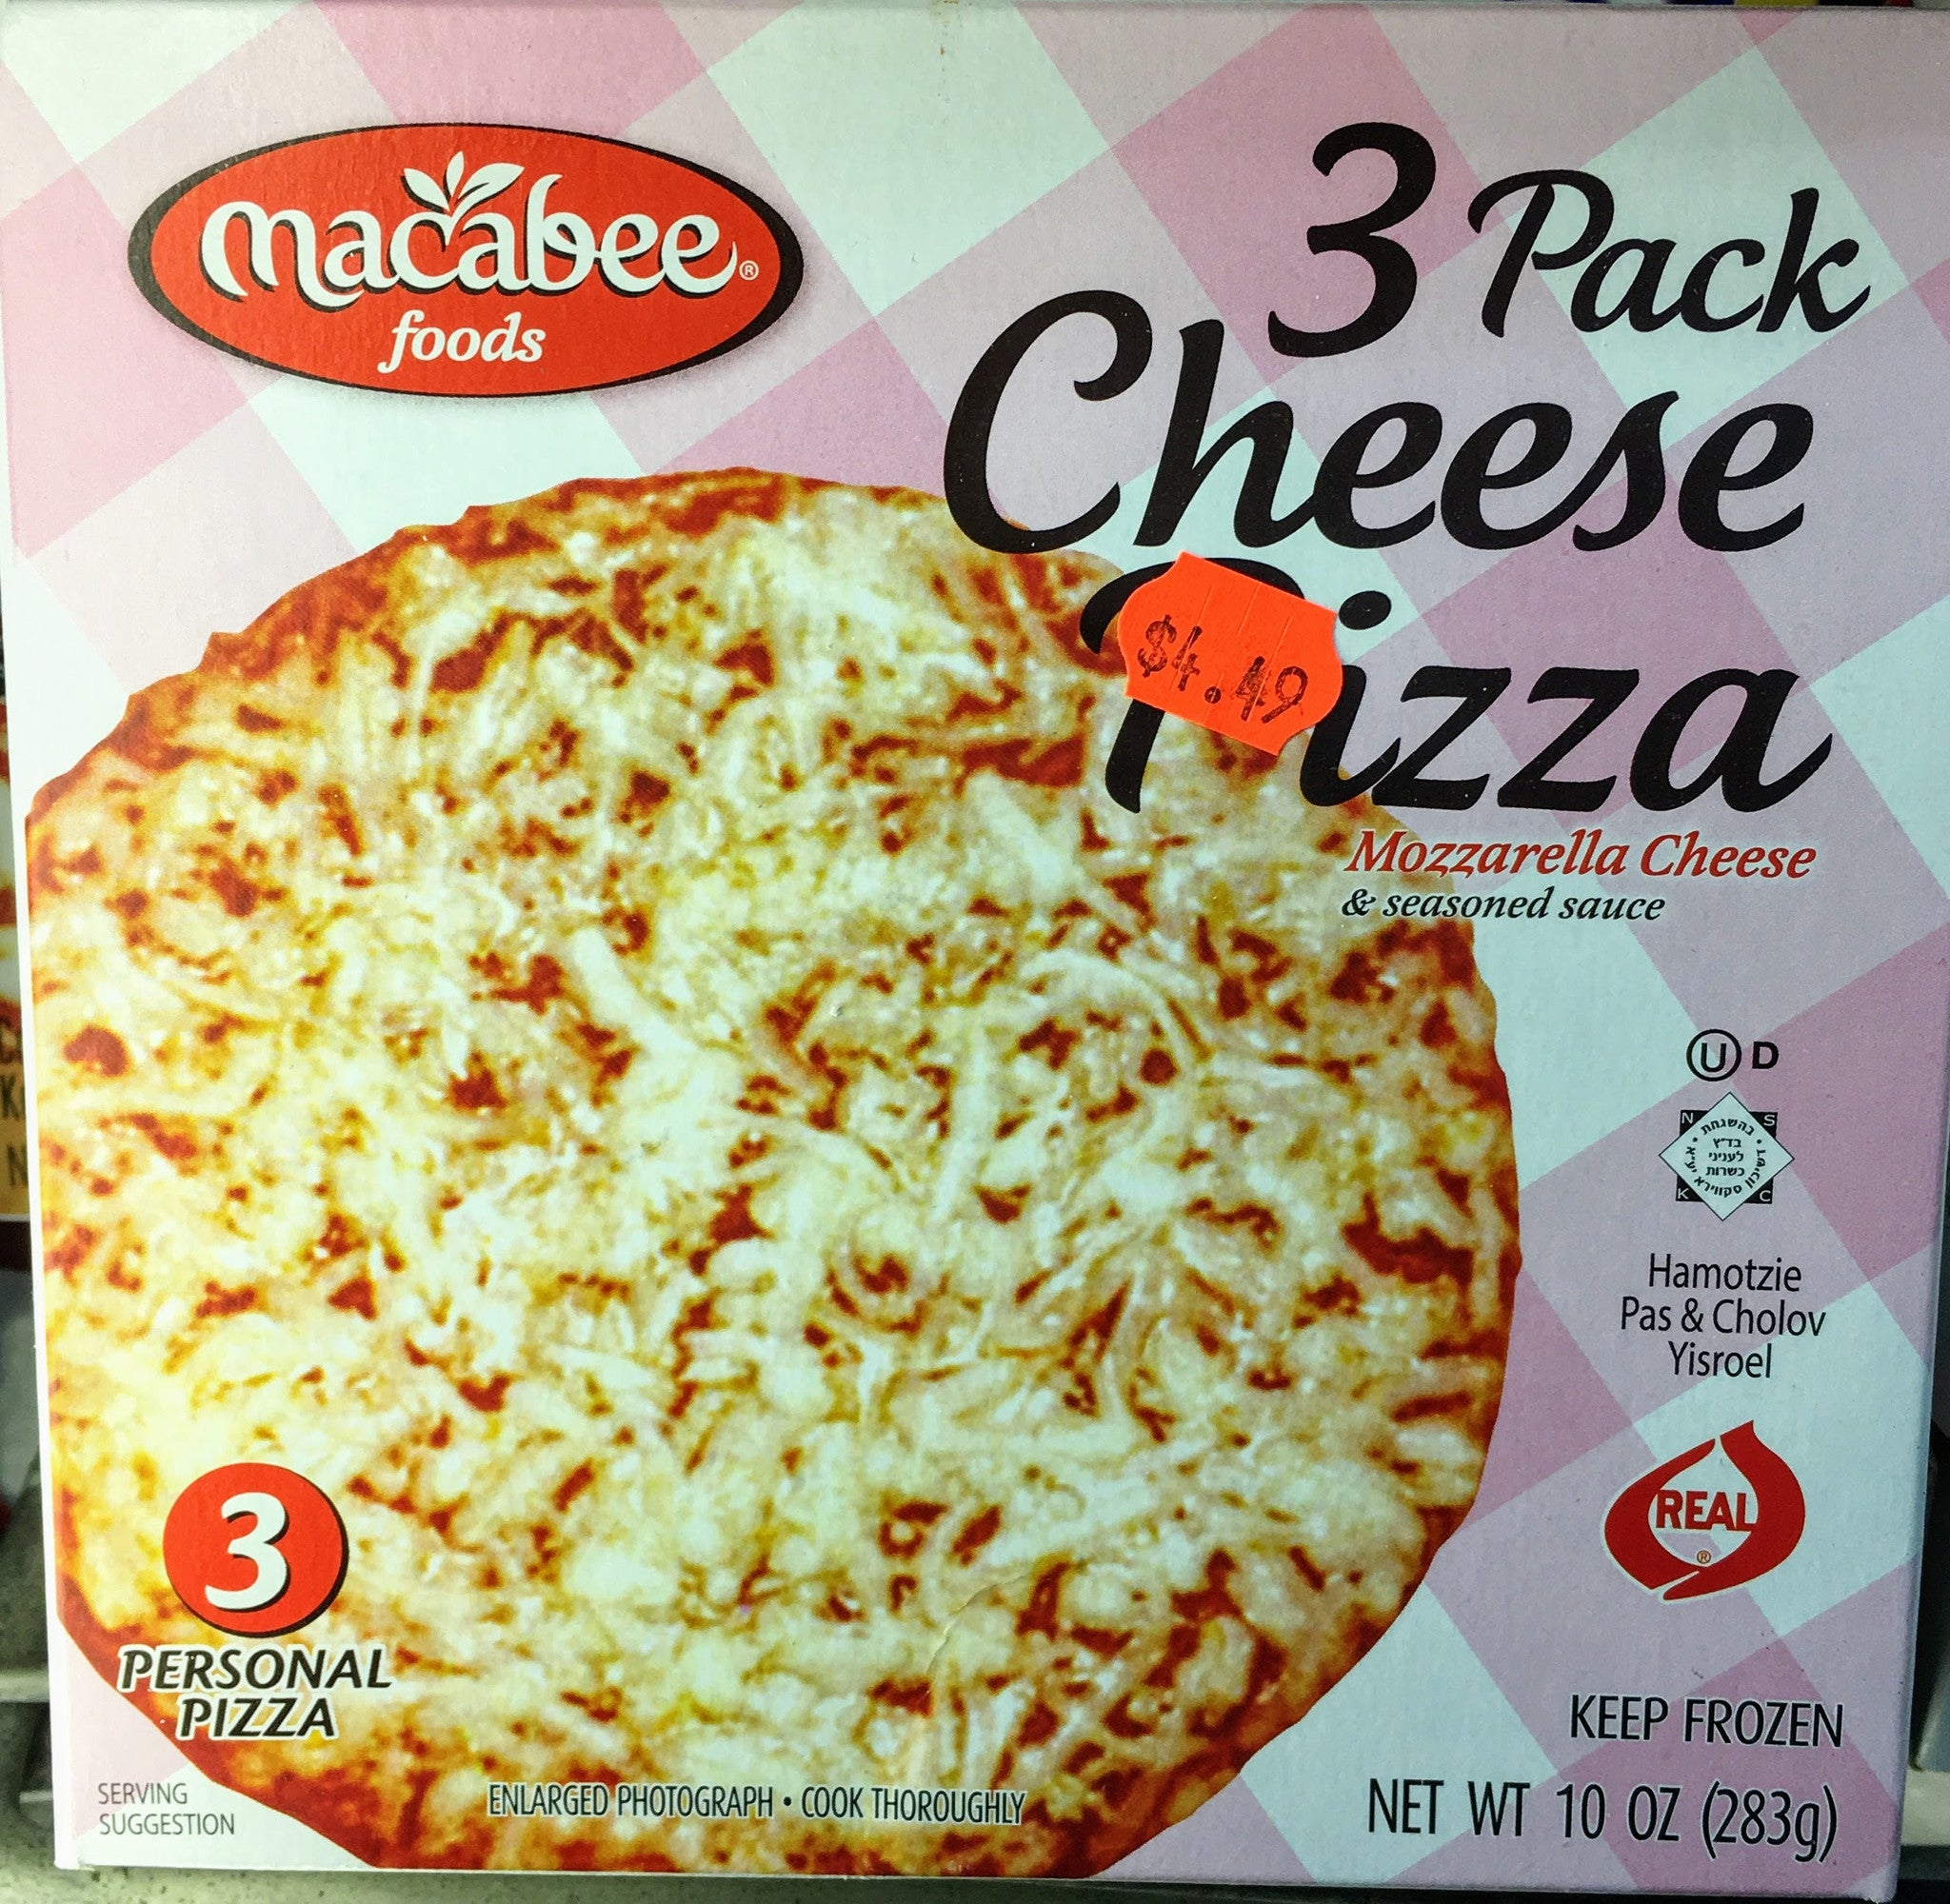 Macabee 3 Cheese Pizzas